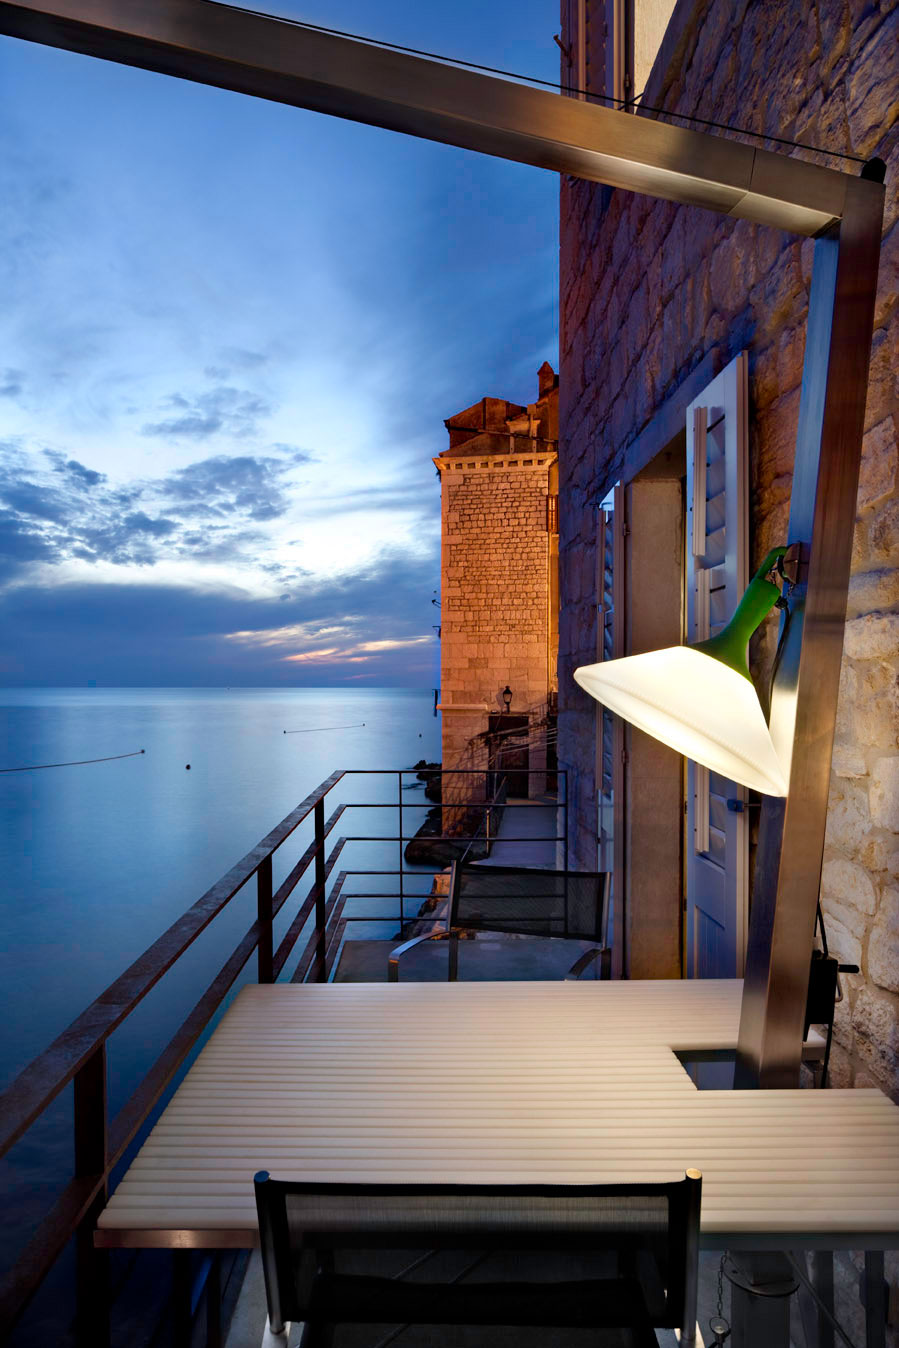 Balcony, Sea Views, Renovation of an 18th Century Building in Rovinj, Croatia